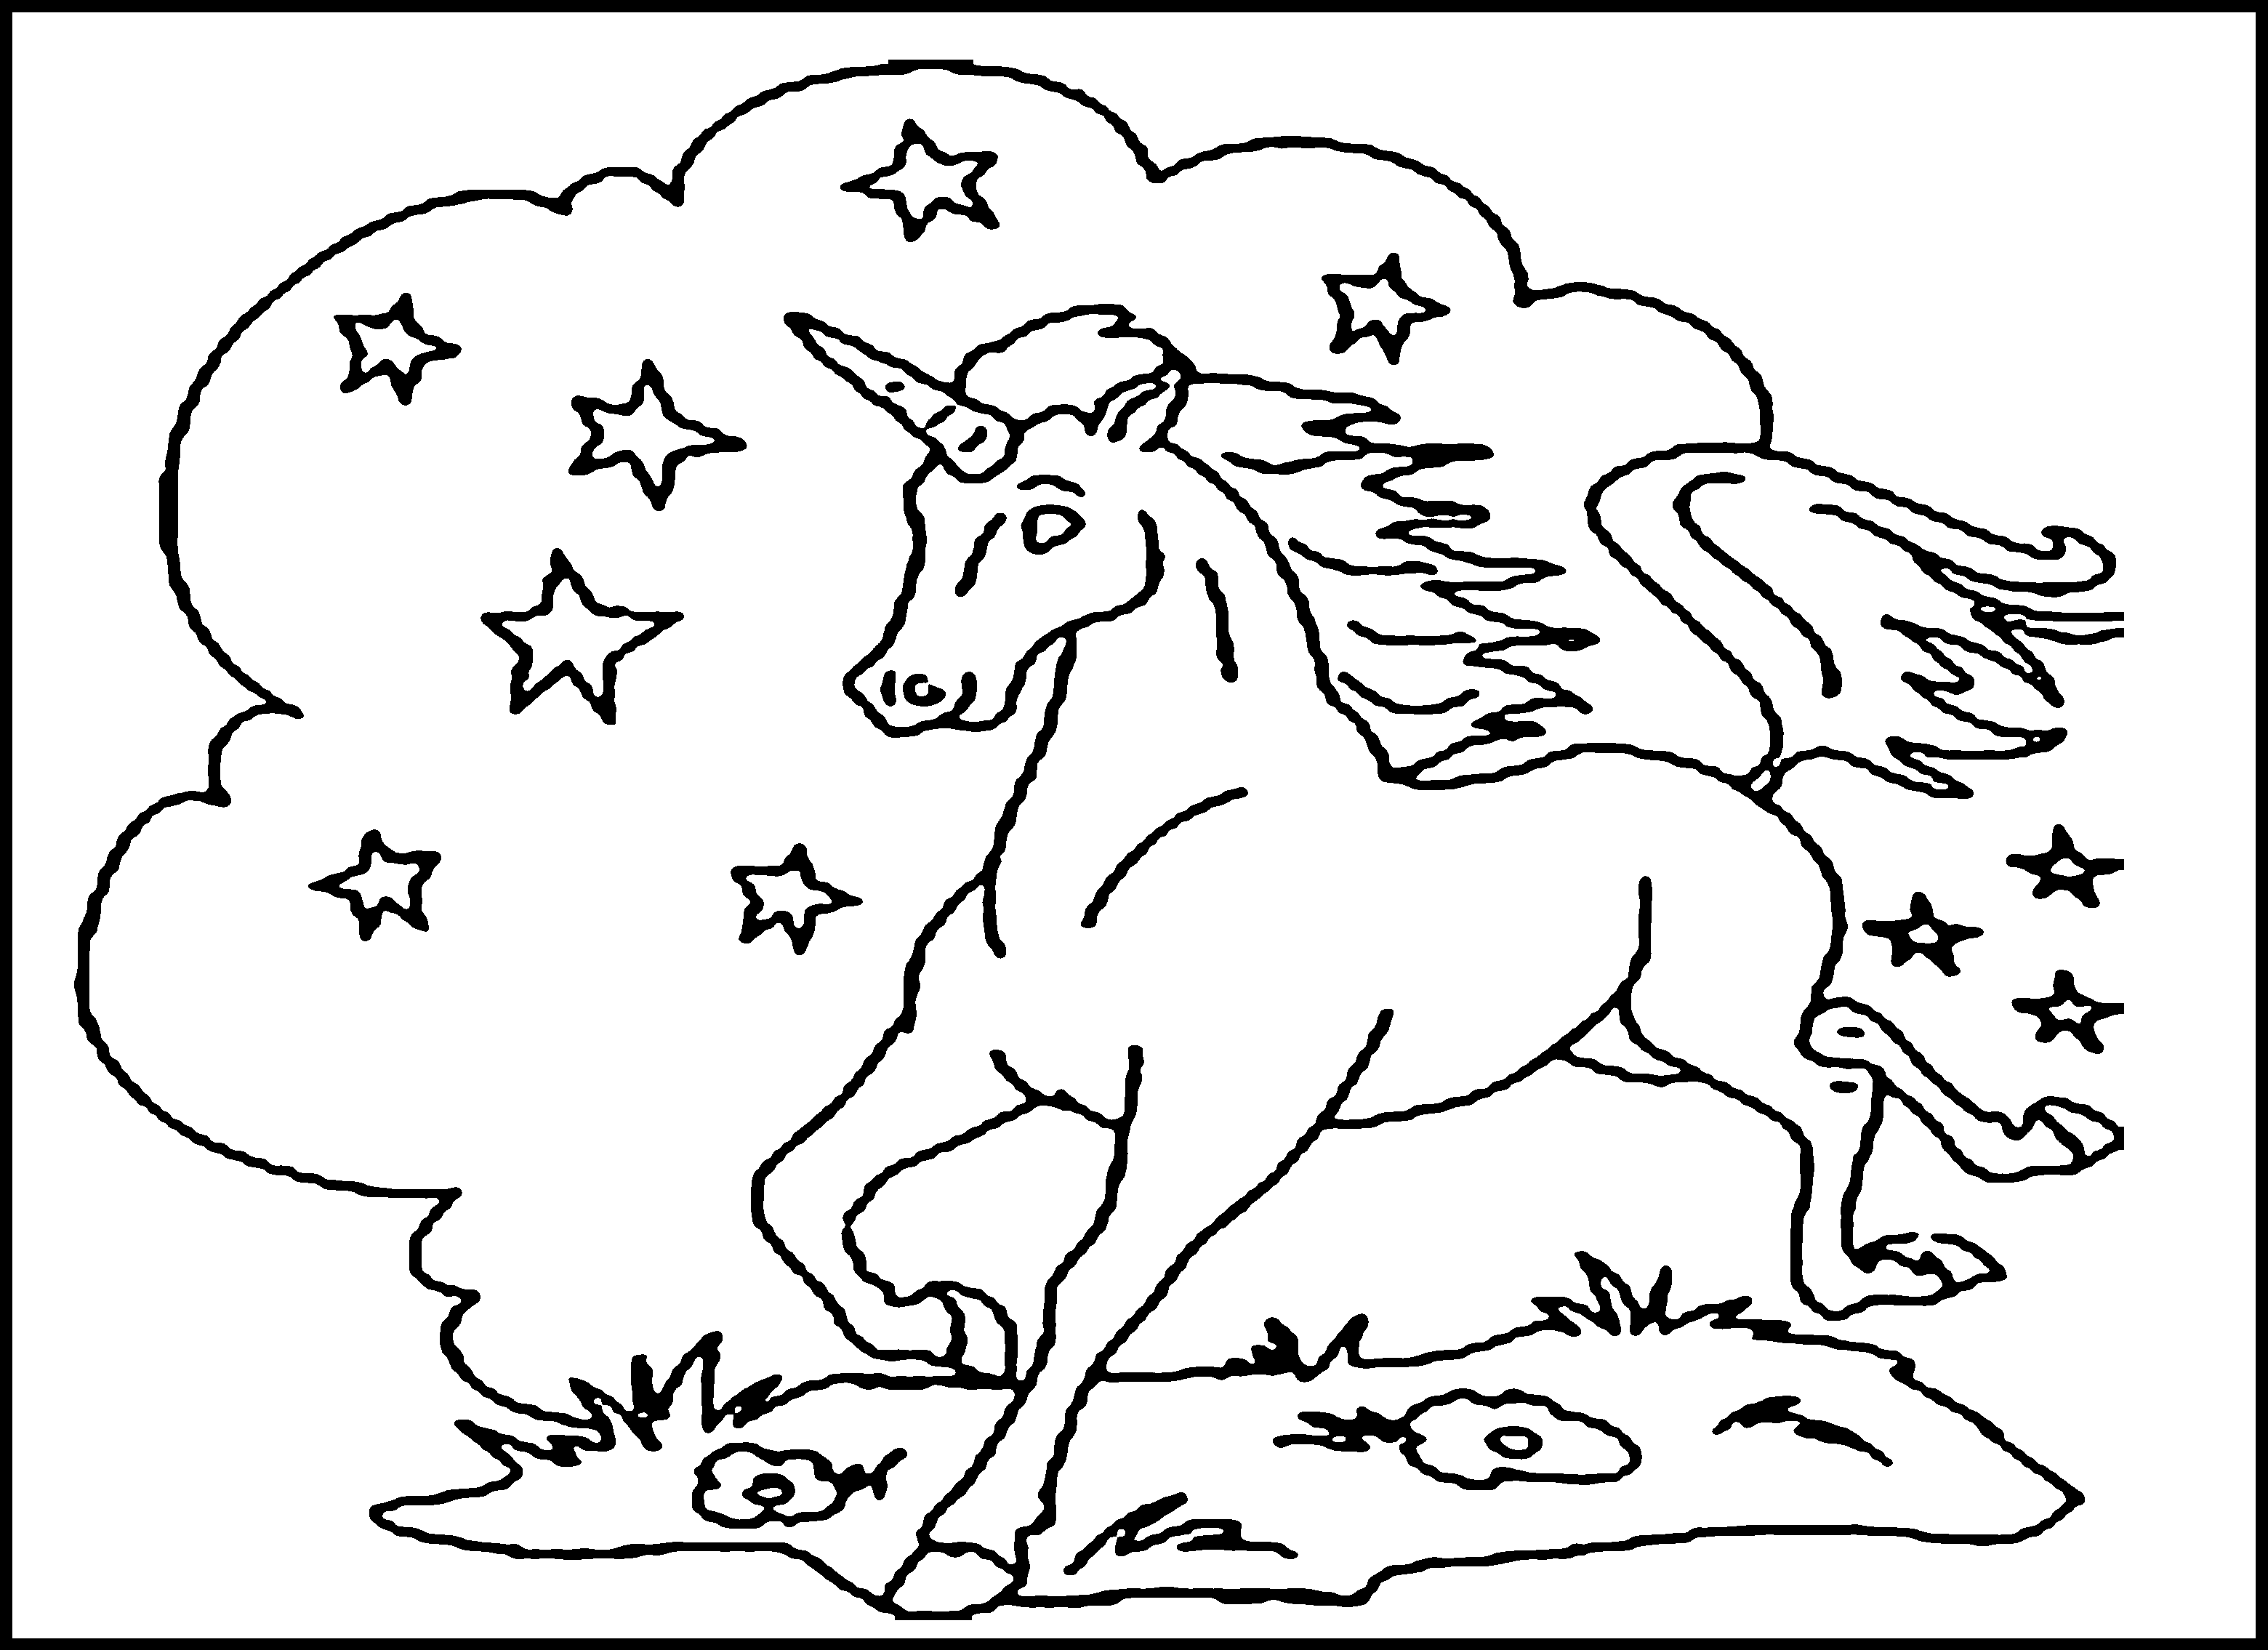 3120x2270 Printable Colouring In Coloring Sweet Print Paint Kids Coloring